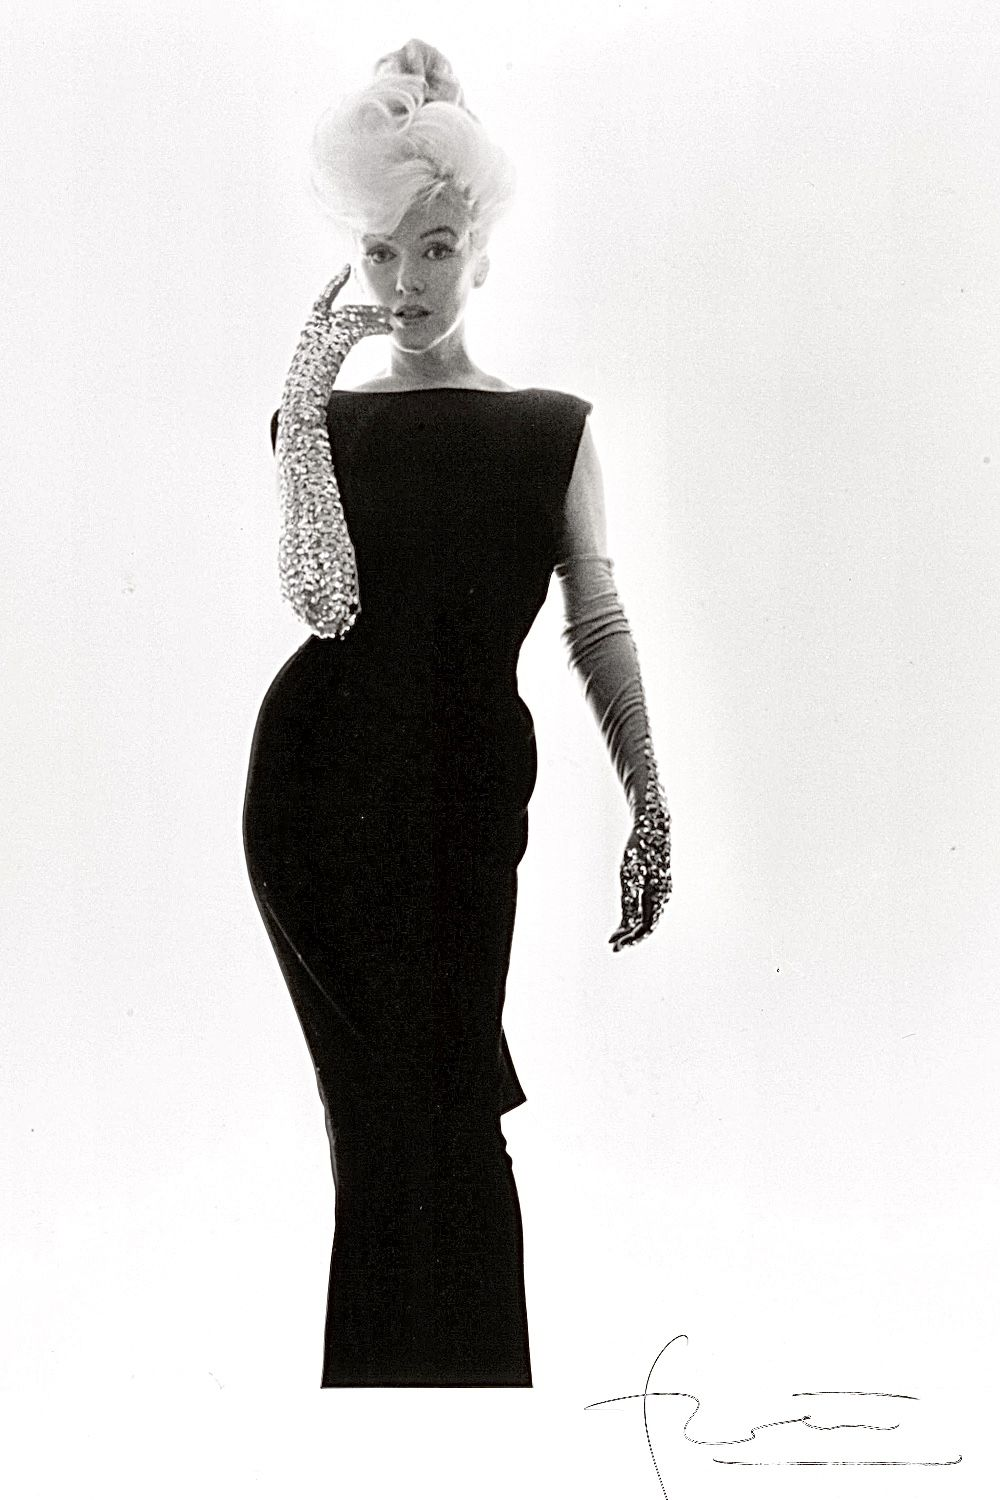 The Glitter Gloves And Black Dress Photo Session With Bert Stern 1962 Ball Gown Dresses Dresses Female Portrait [ 1500 x 1000 Pixel ]